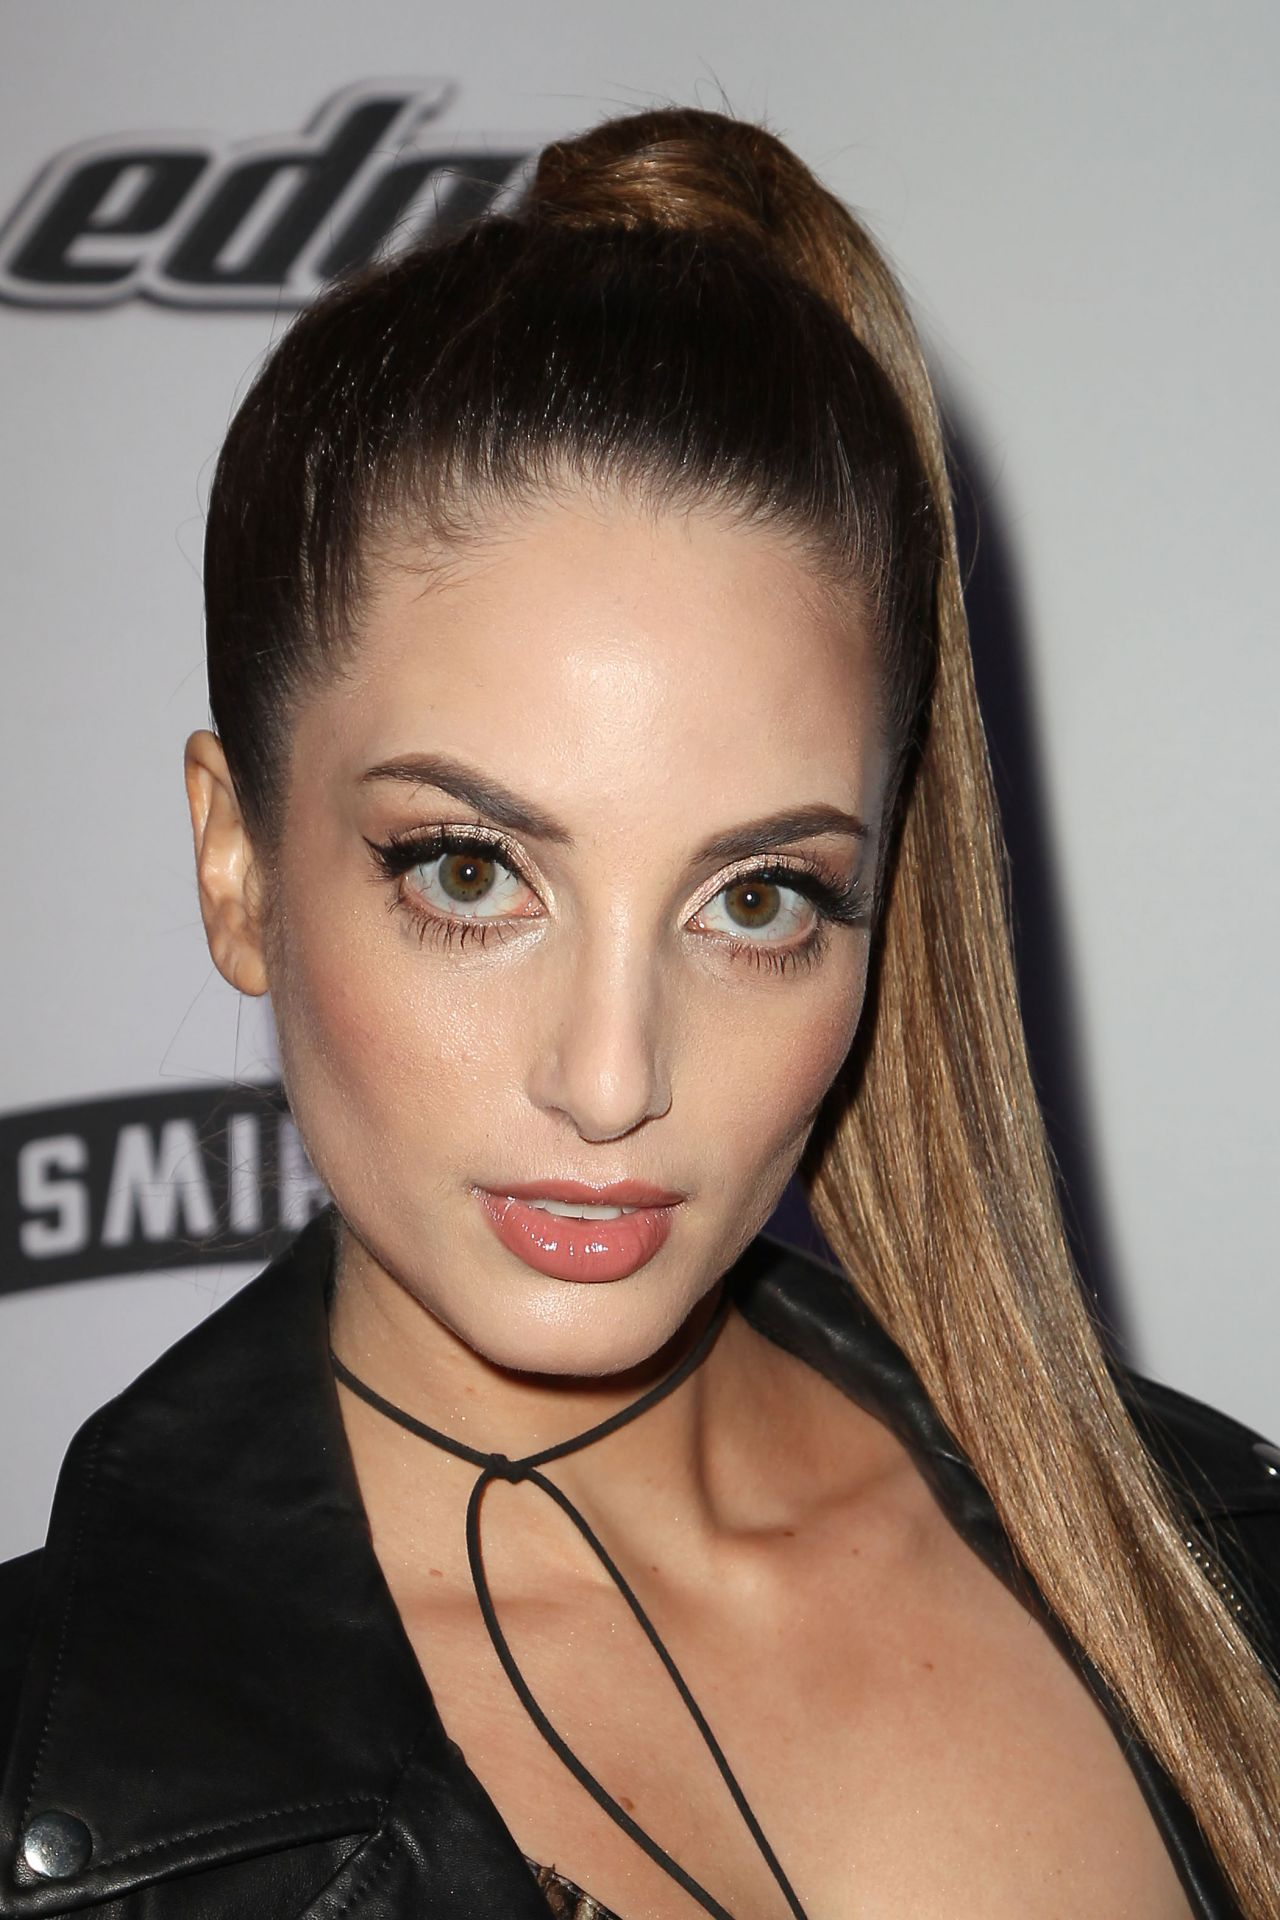 pictures Alexa ray joel portrait in new york to promote her show